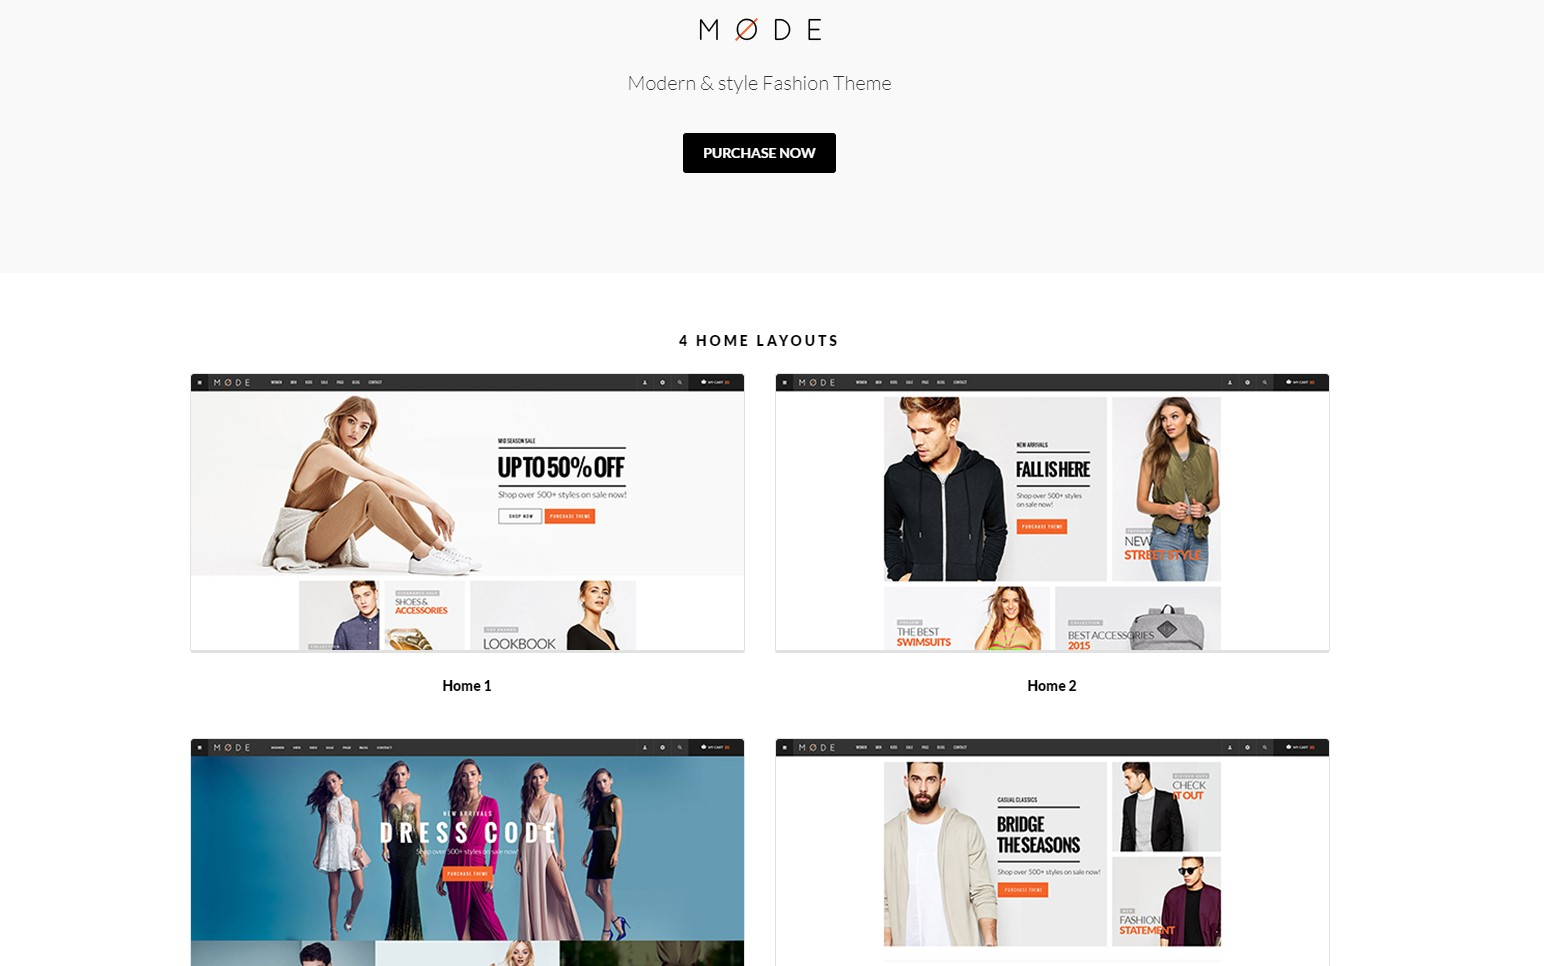 Mode - Minimalistic Modern Fashion WooCommerce WordPress Theme